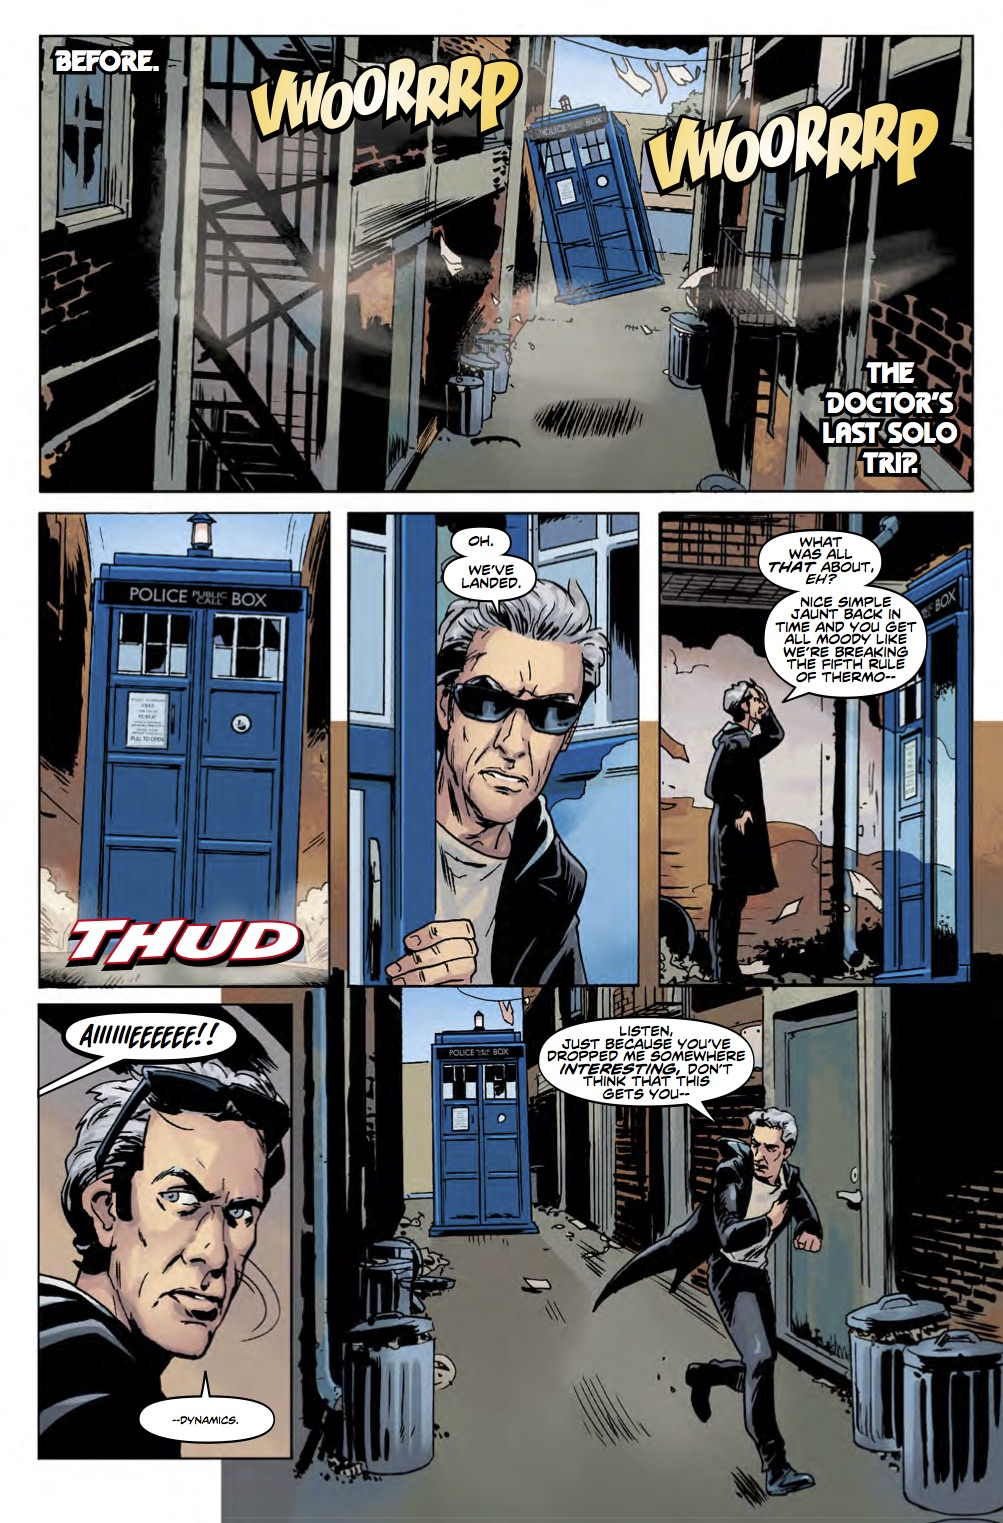 TWELFTH DOCTOR YEAR 3 #2 Page 1 (Credit: Titan)